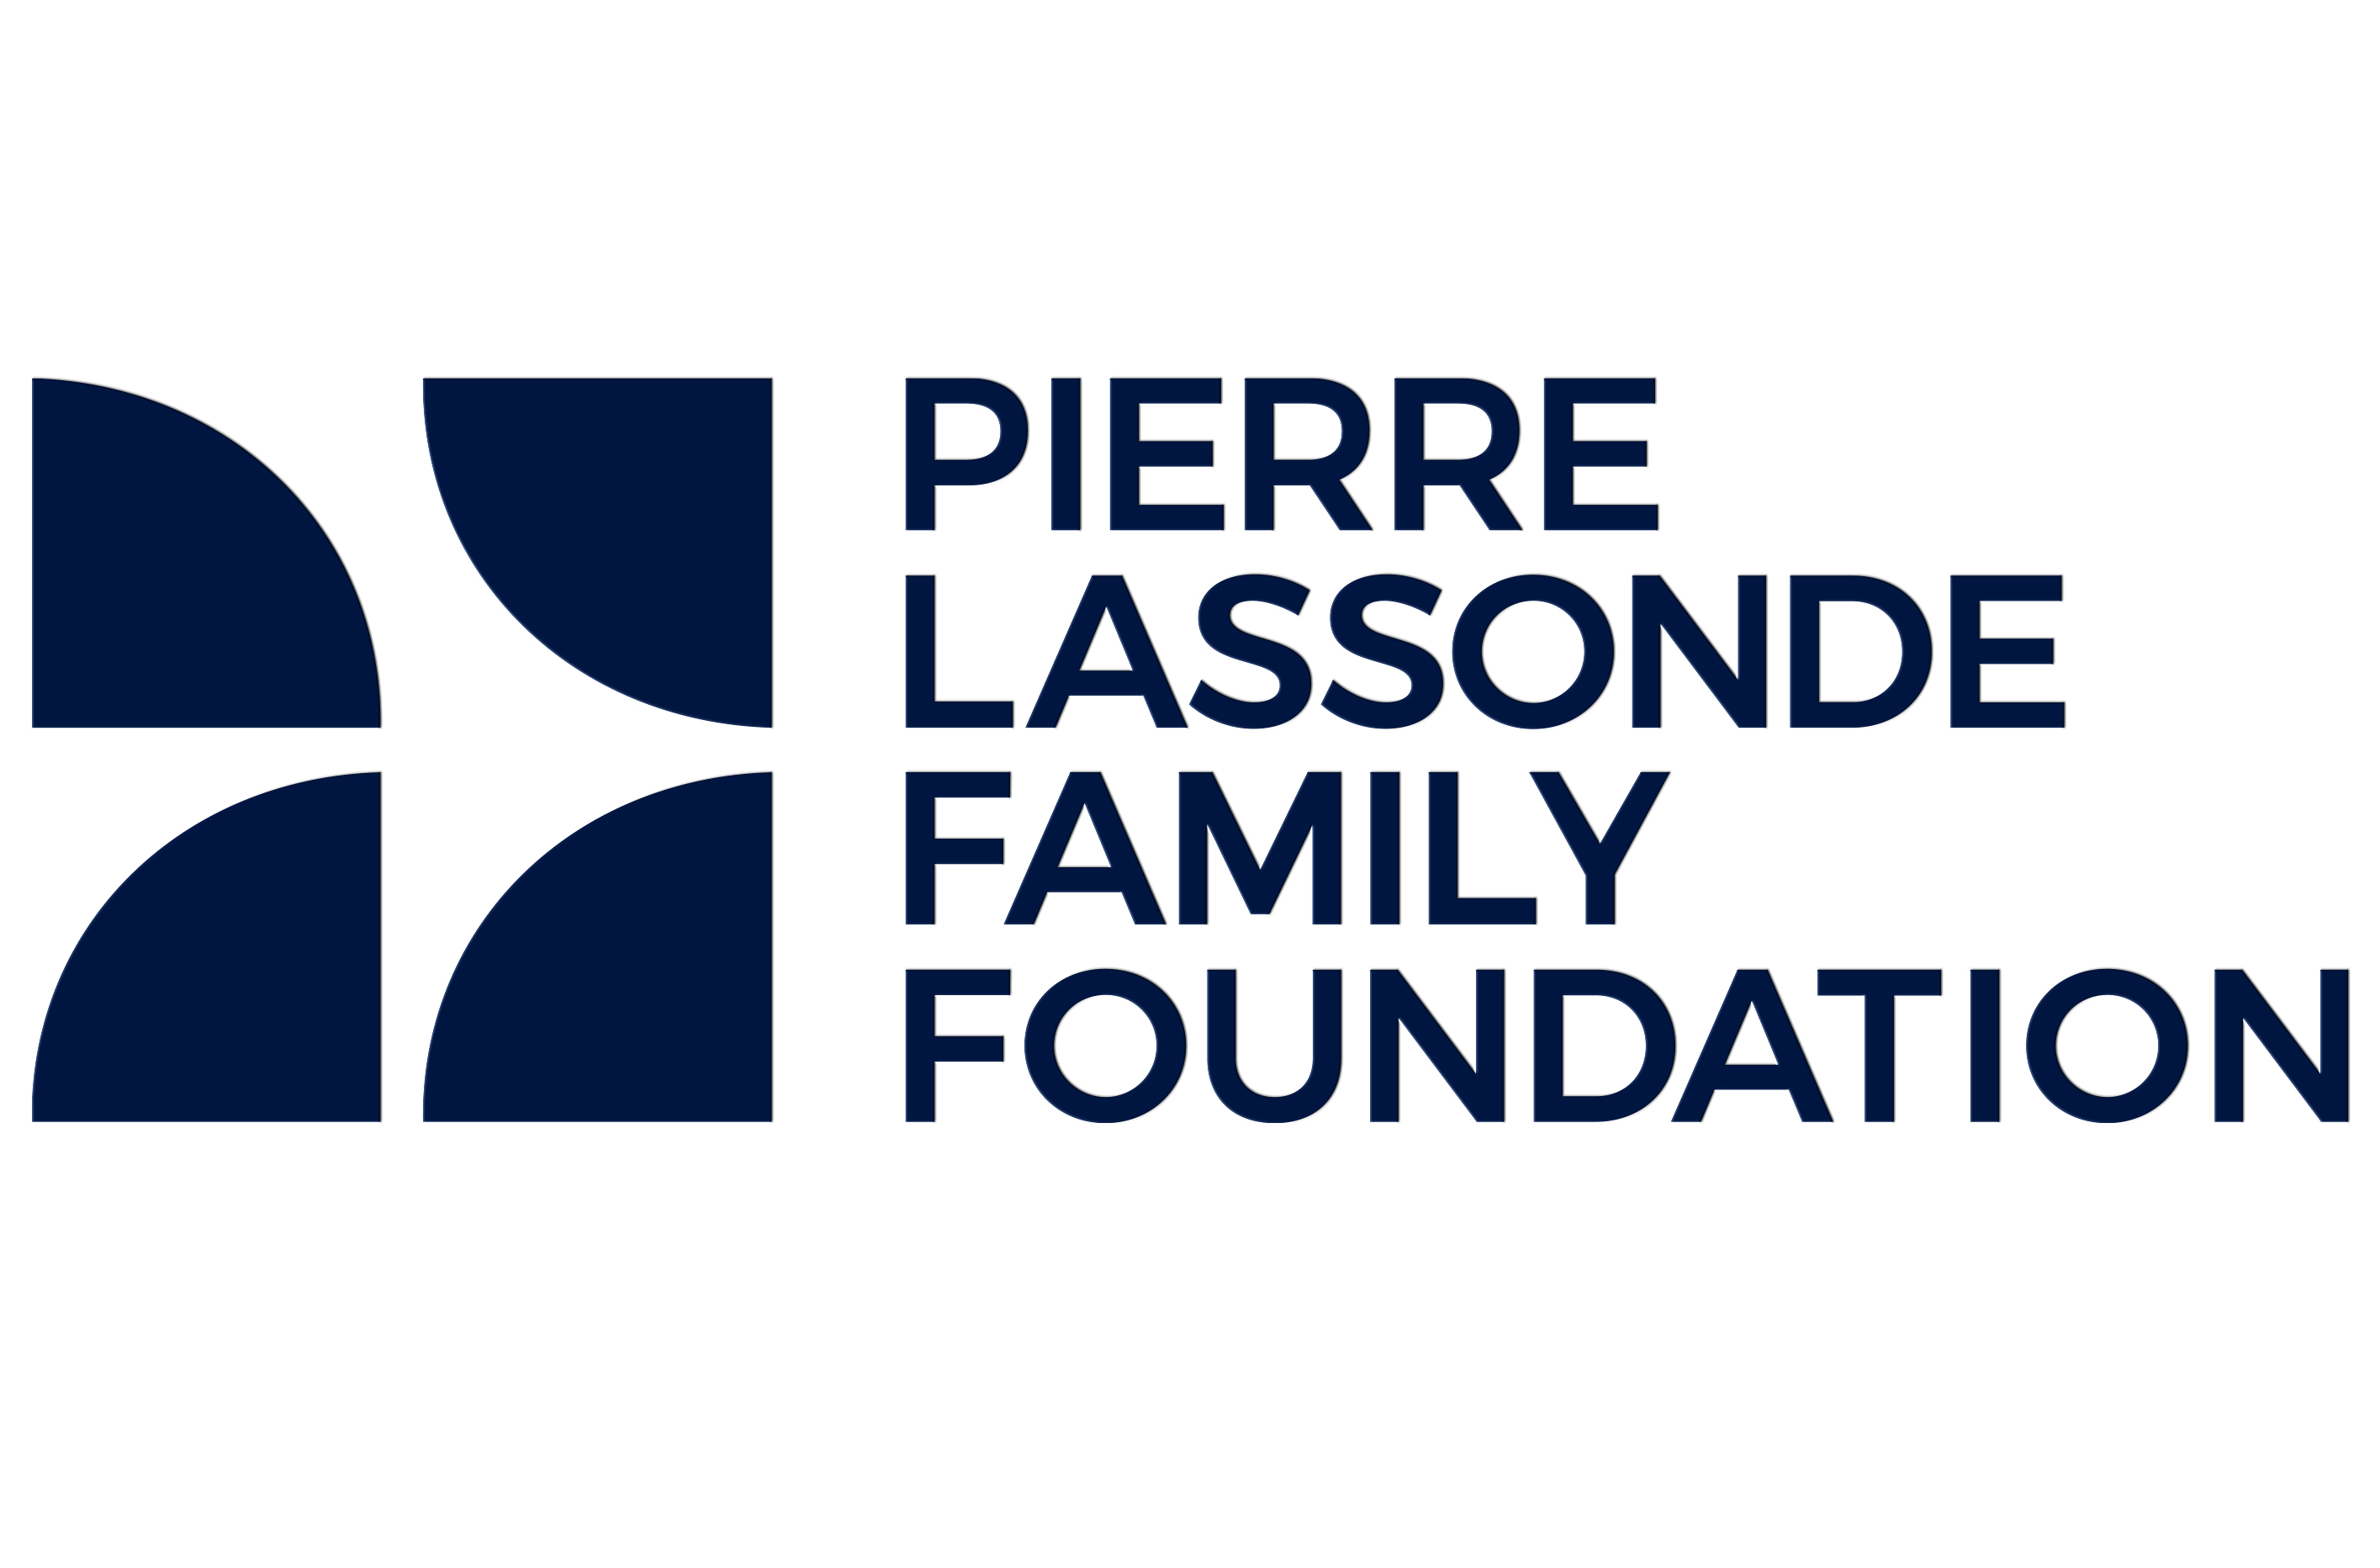 Pierre Lassonde Family Foundation